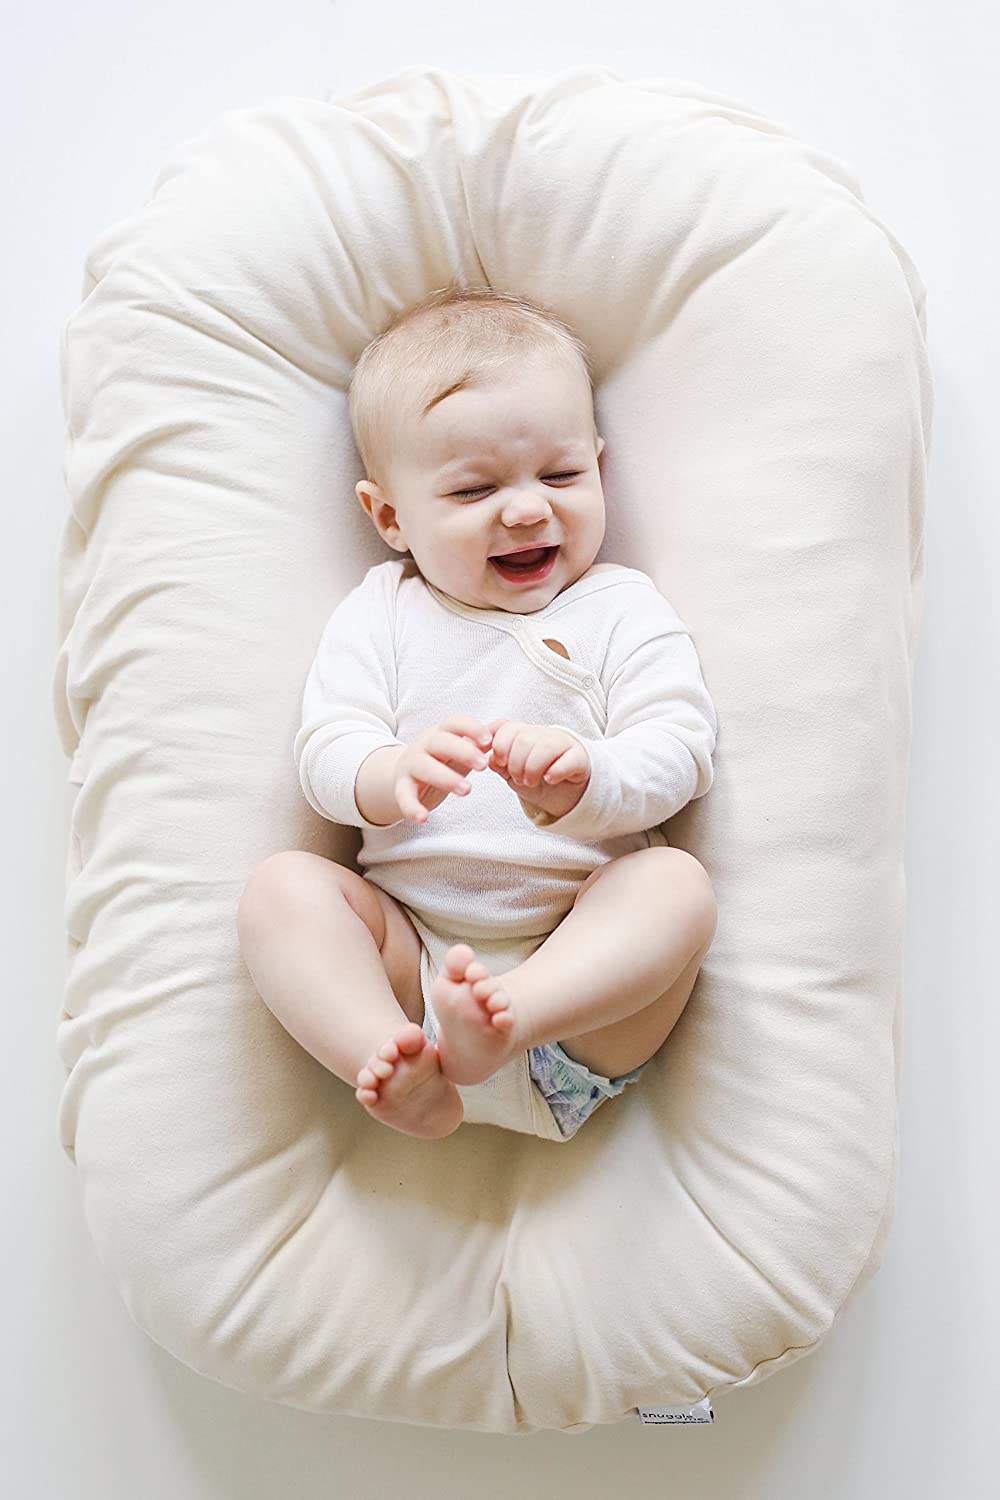 Snuggle Me Organic | The Original Baby Lounger, Infant Co-Sleeping Cushion, Portable Play Mat and Travel Bed for Newborn to 6 Months by Snuggle Me Organic: ...